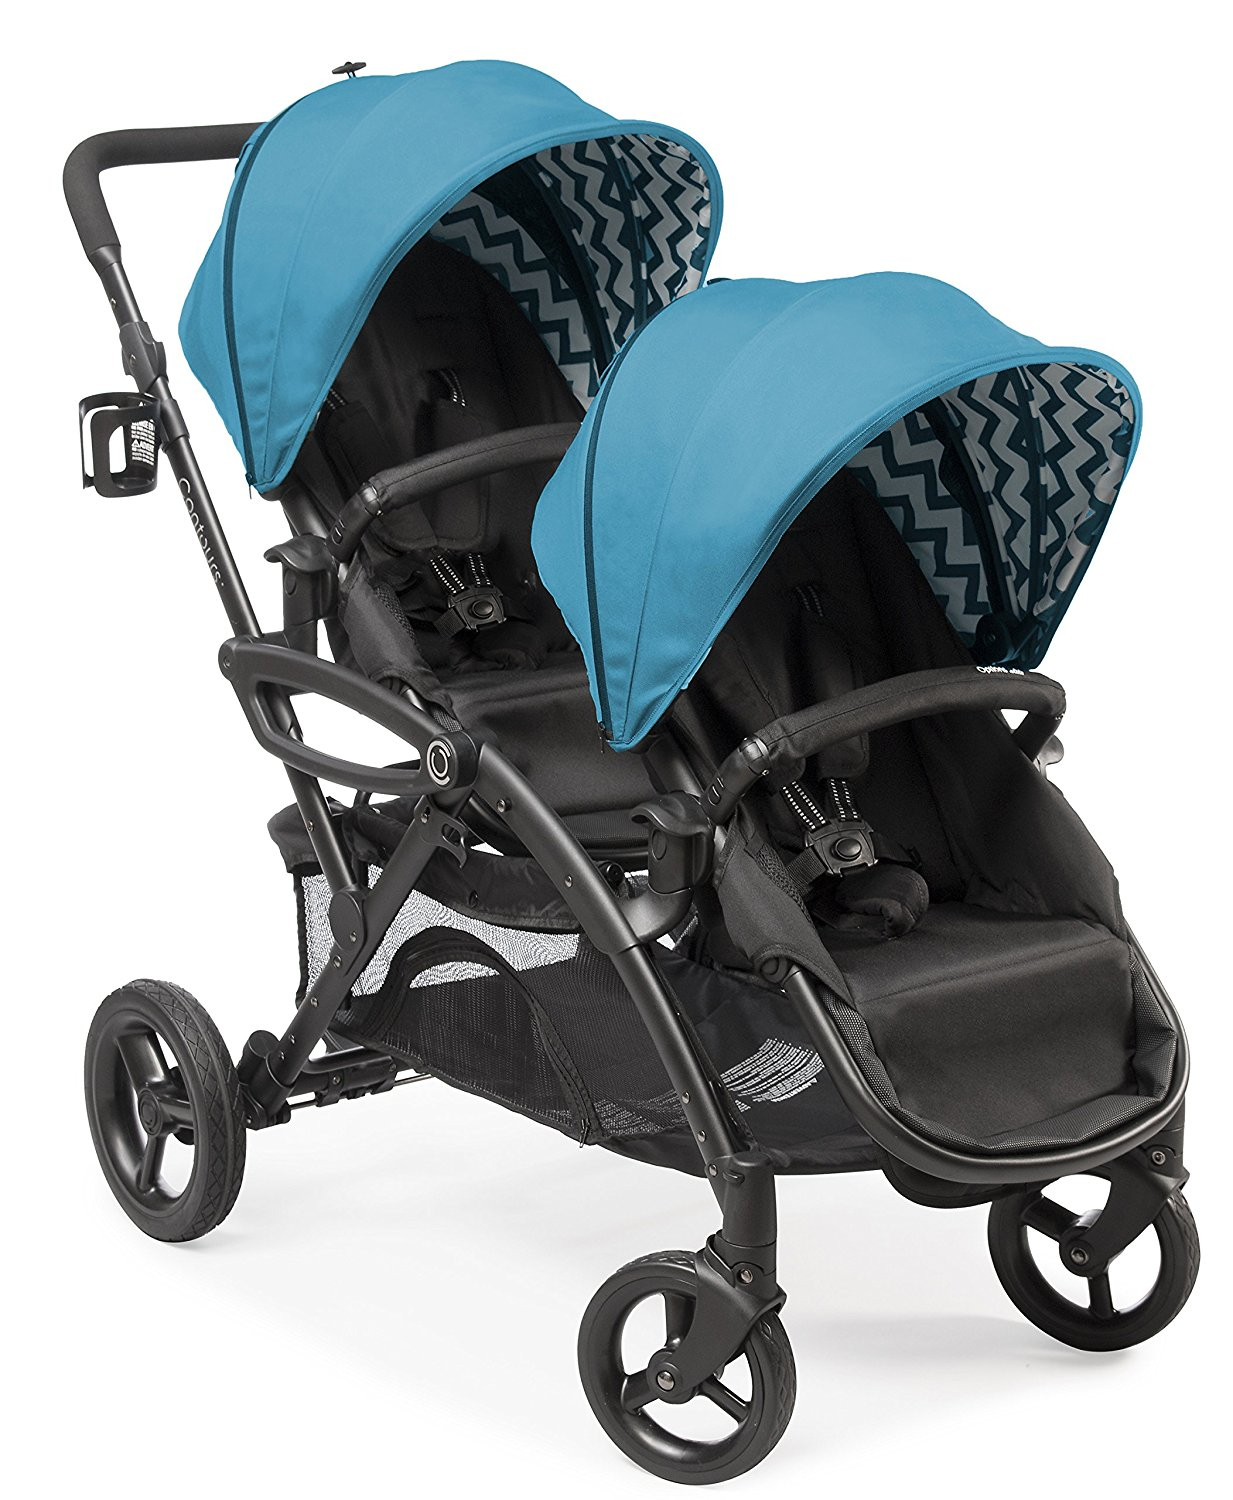 Double Stroller Expensive Best Double Stroller For Toddler And Infant Review 2019